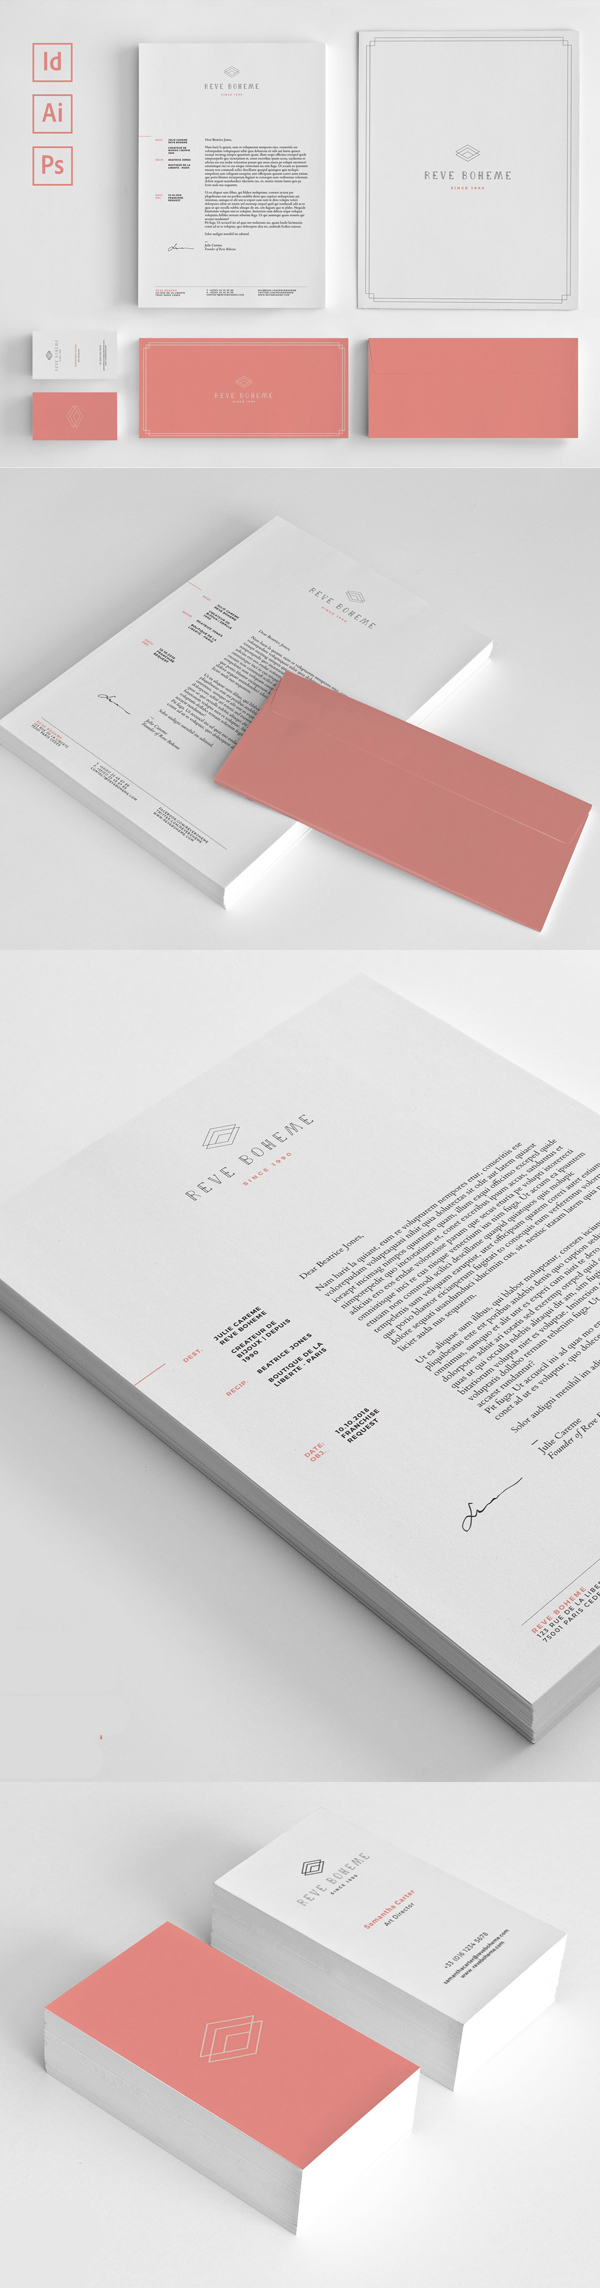 Modern Business Branding / Stationery Templates Design - 4